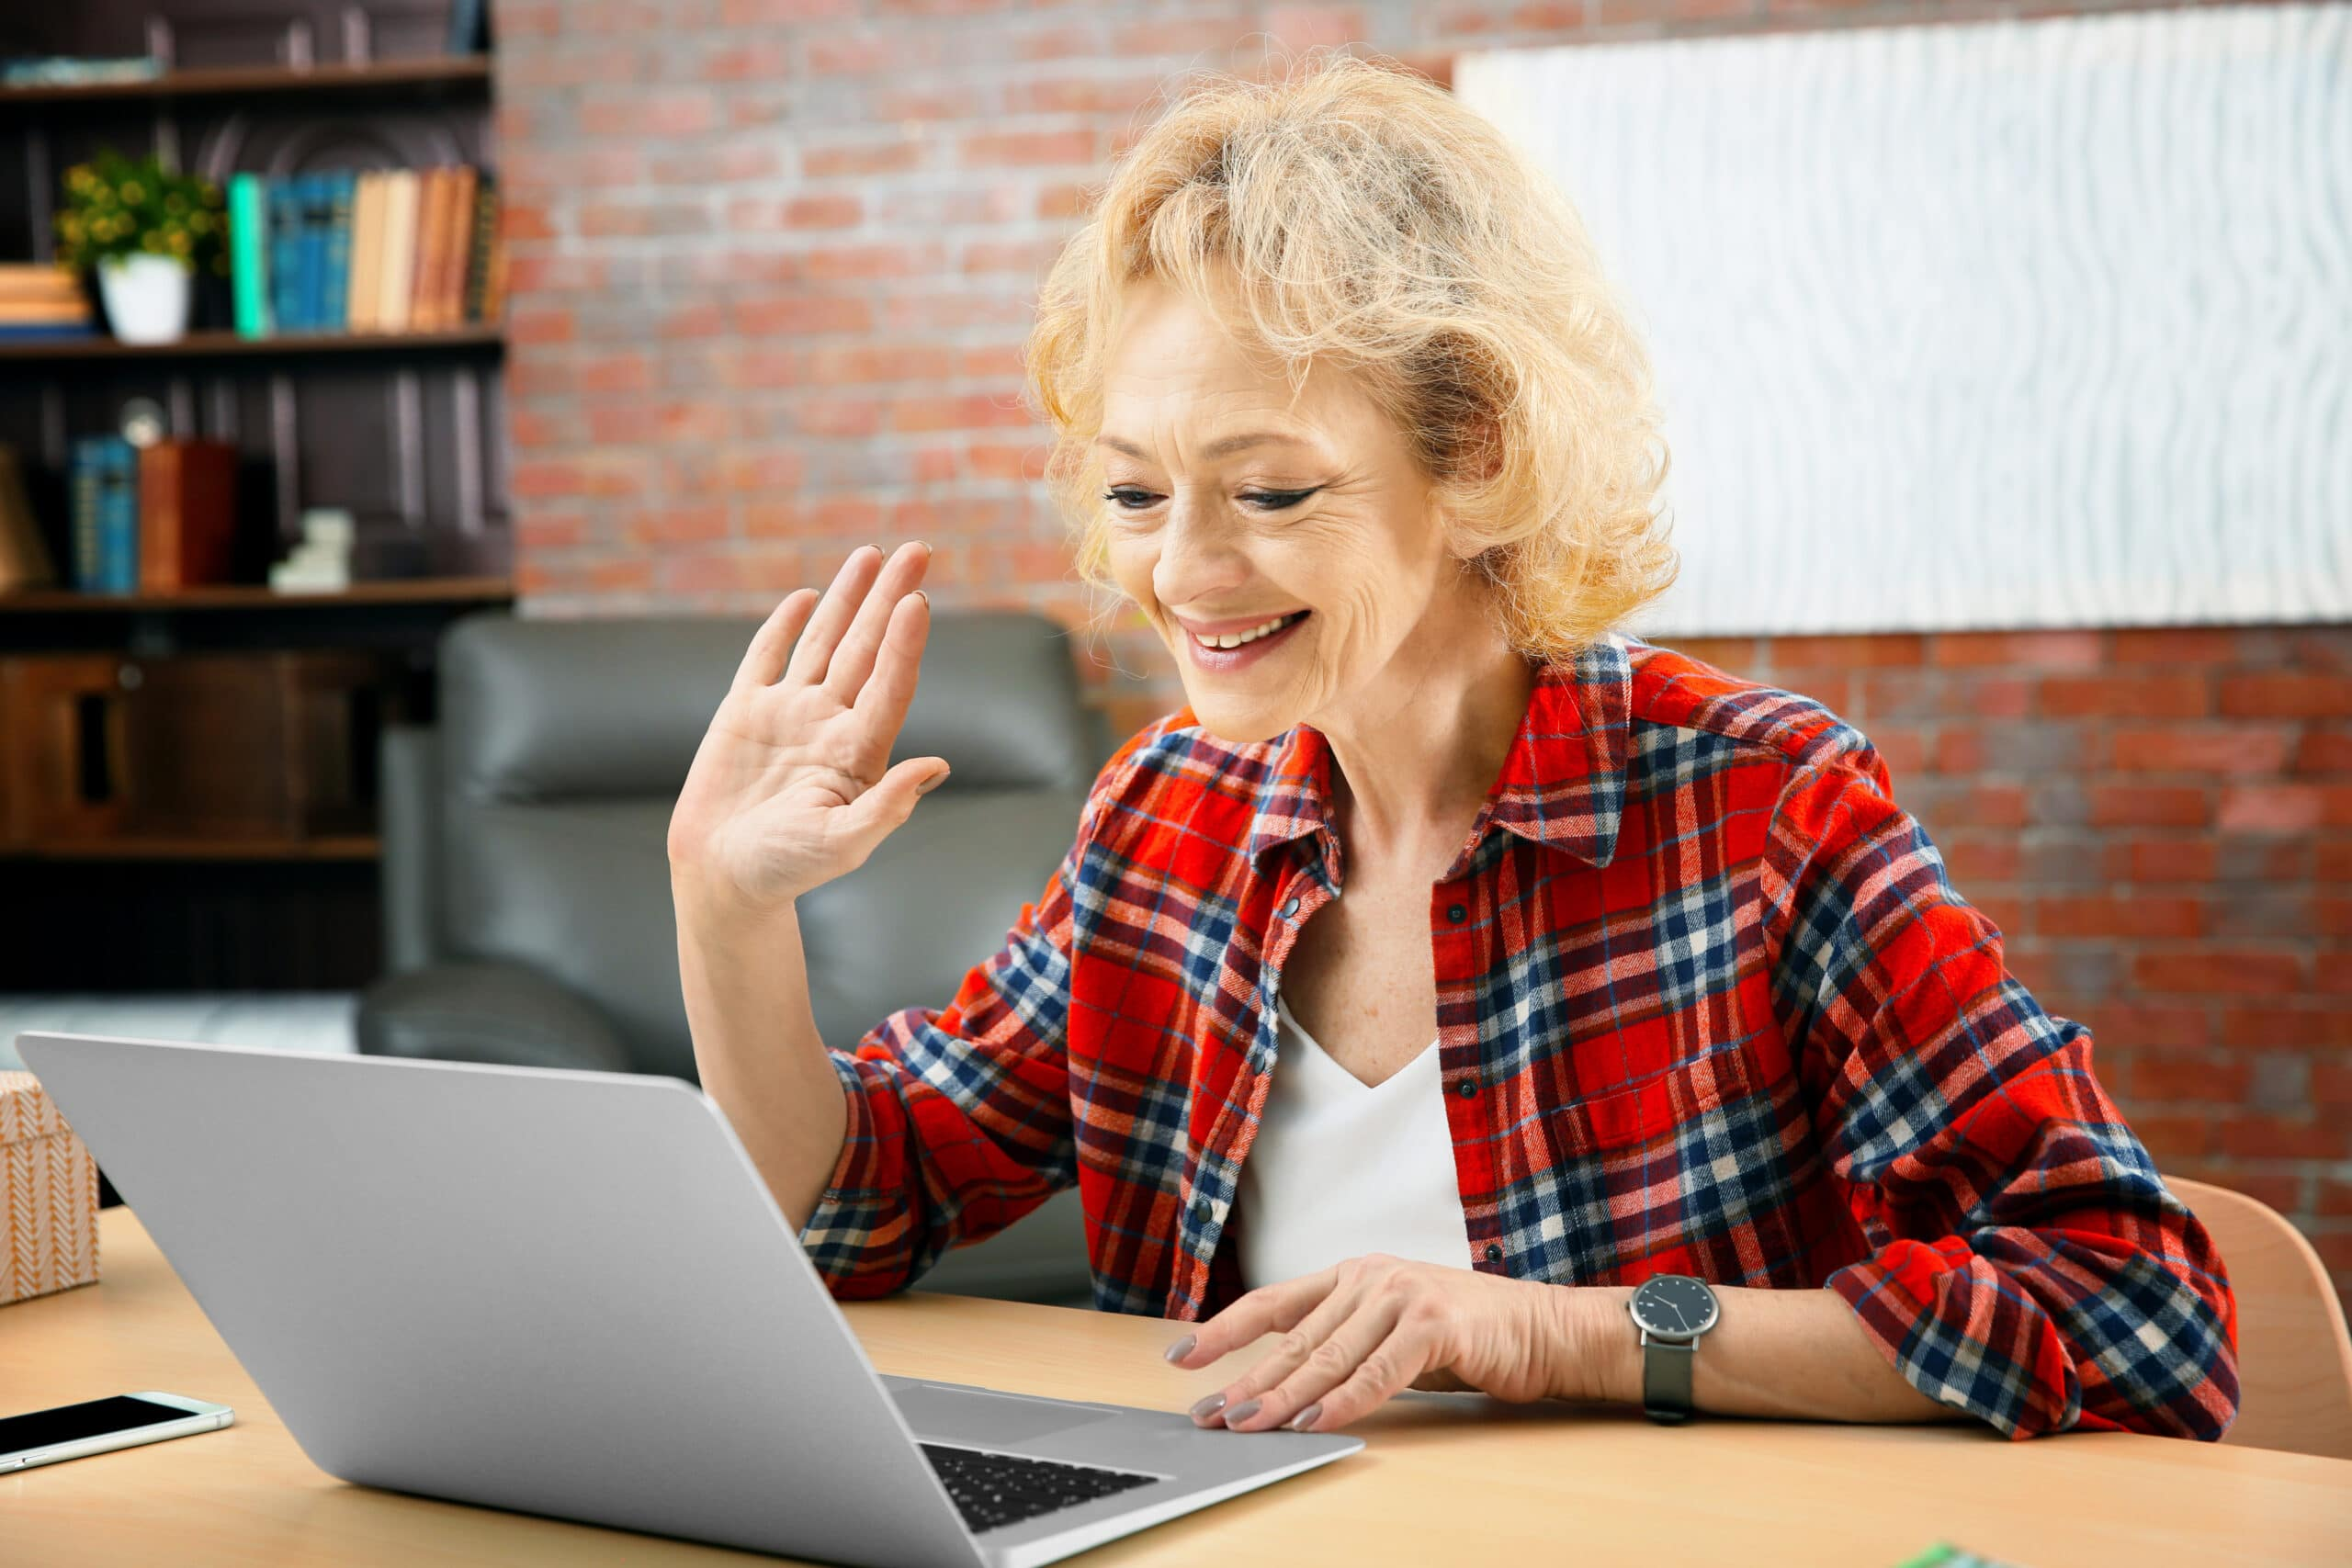 Senior woman engaging in distance learning using laptop at home